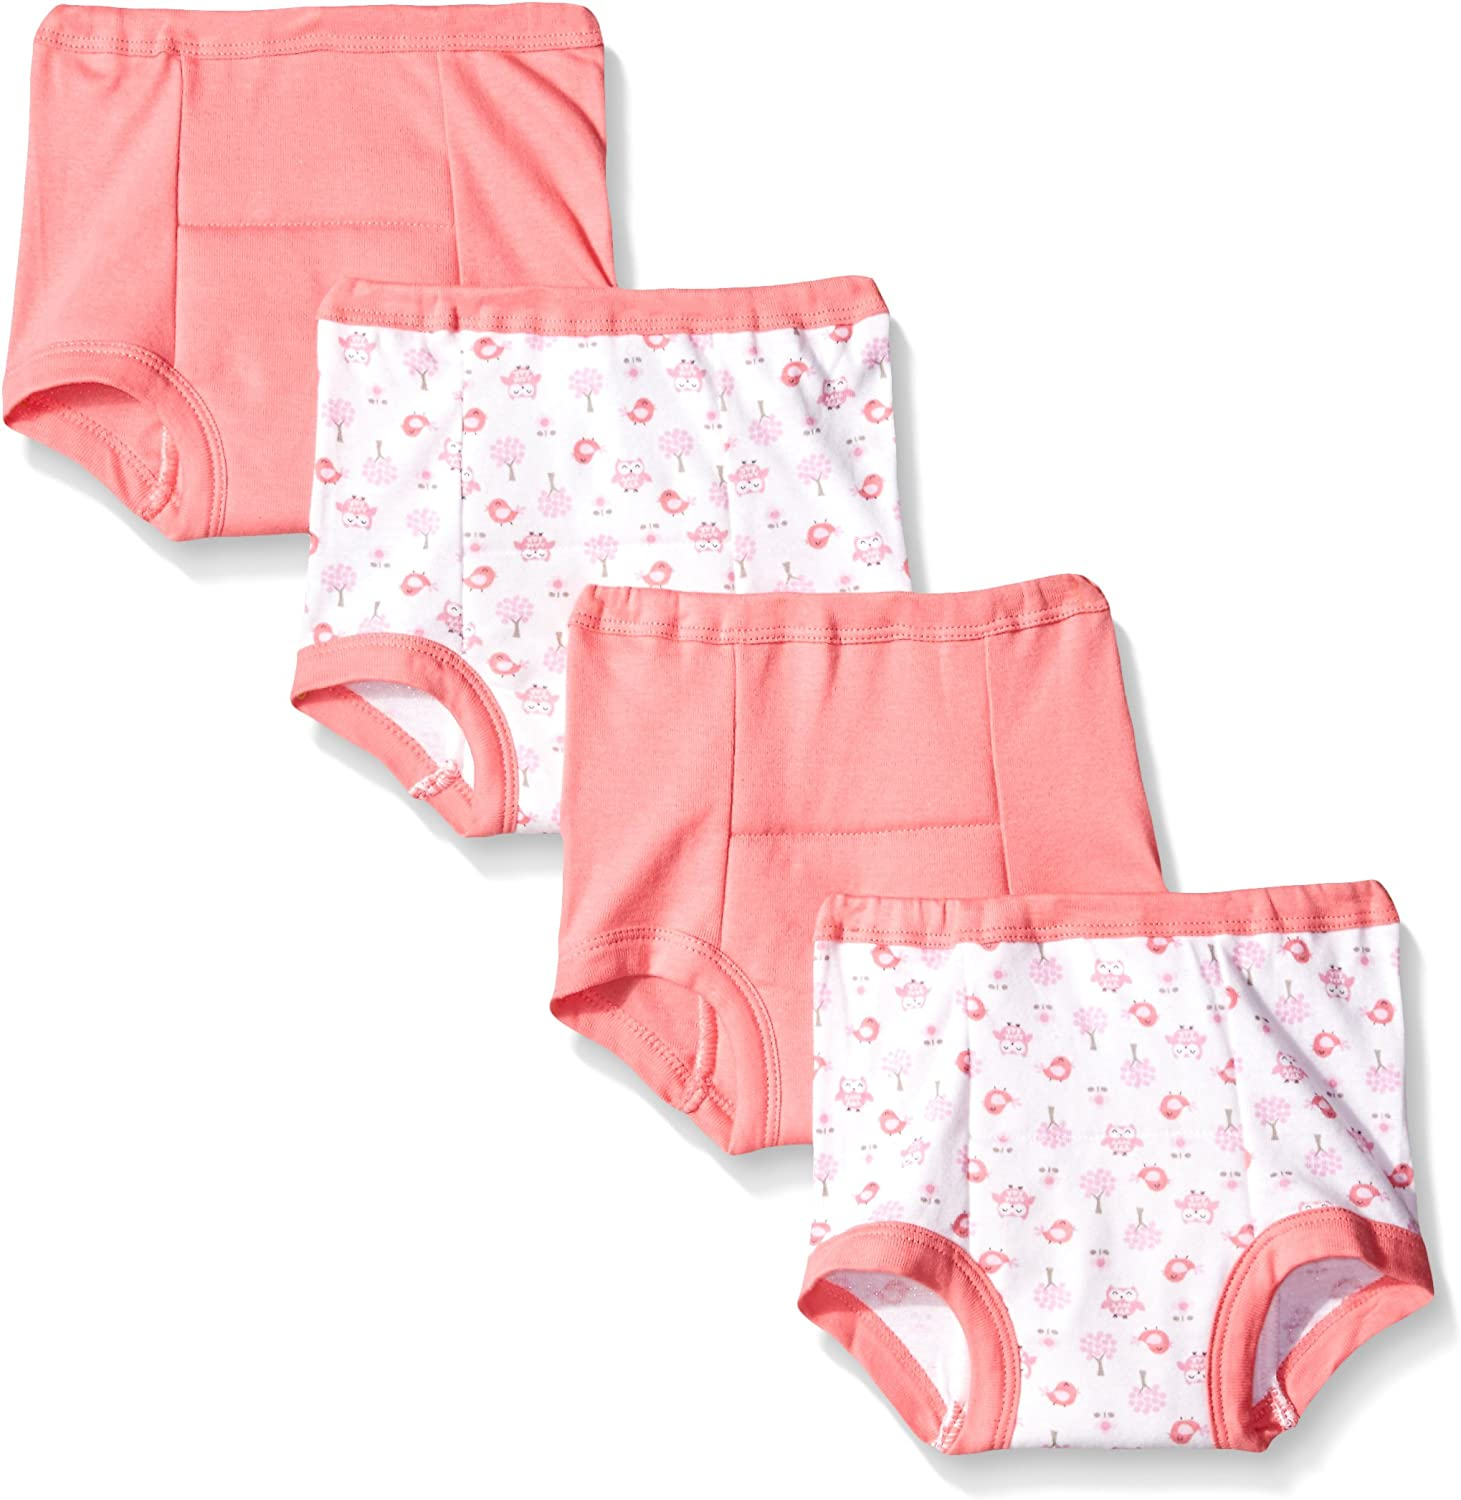 Gerber Baby Boys 4 Pack Training Pants Toddler Underwear